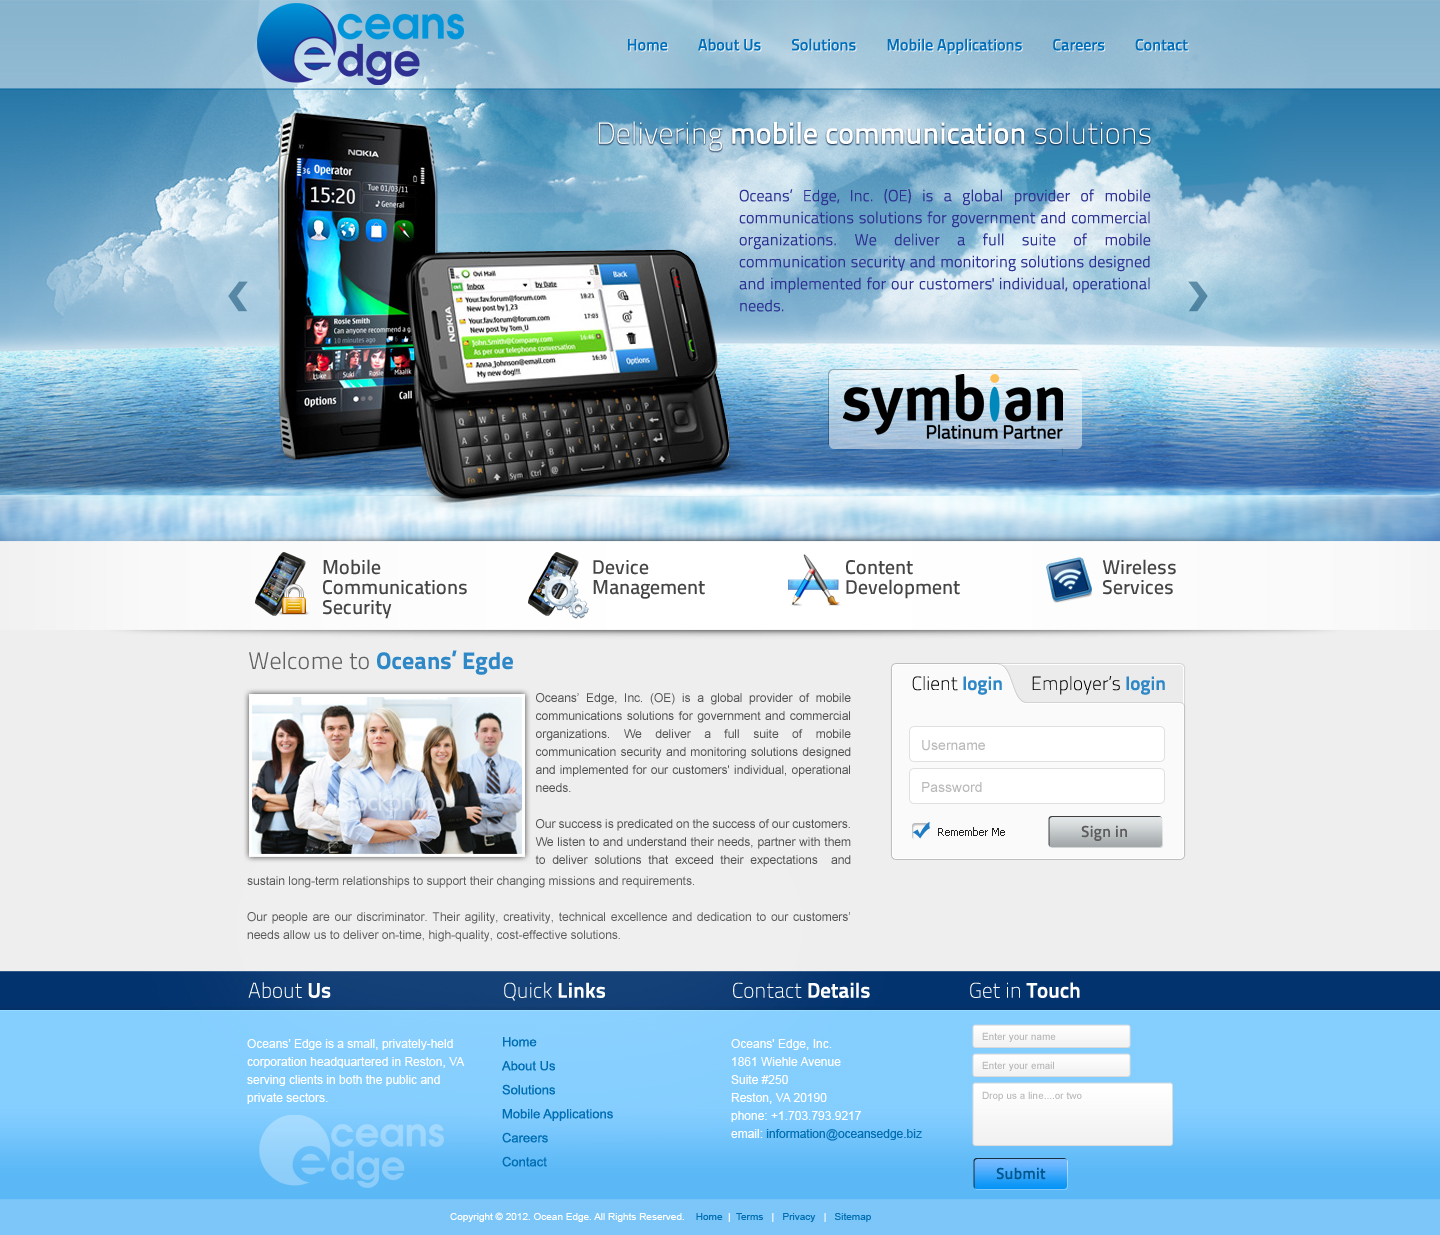 Web Page Design By Vladimir Koncos   Entry No. 78 In The Web Page Design